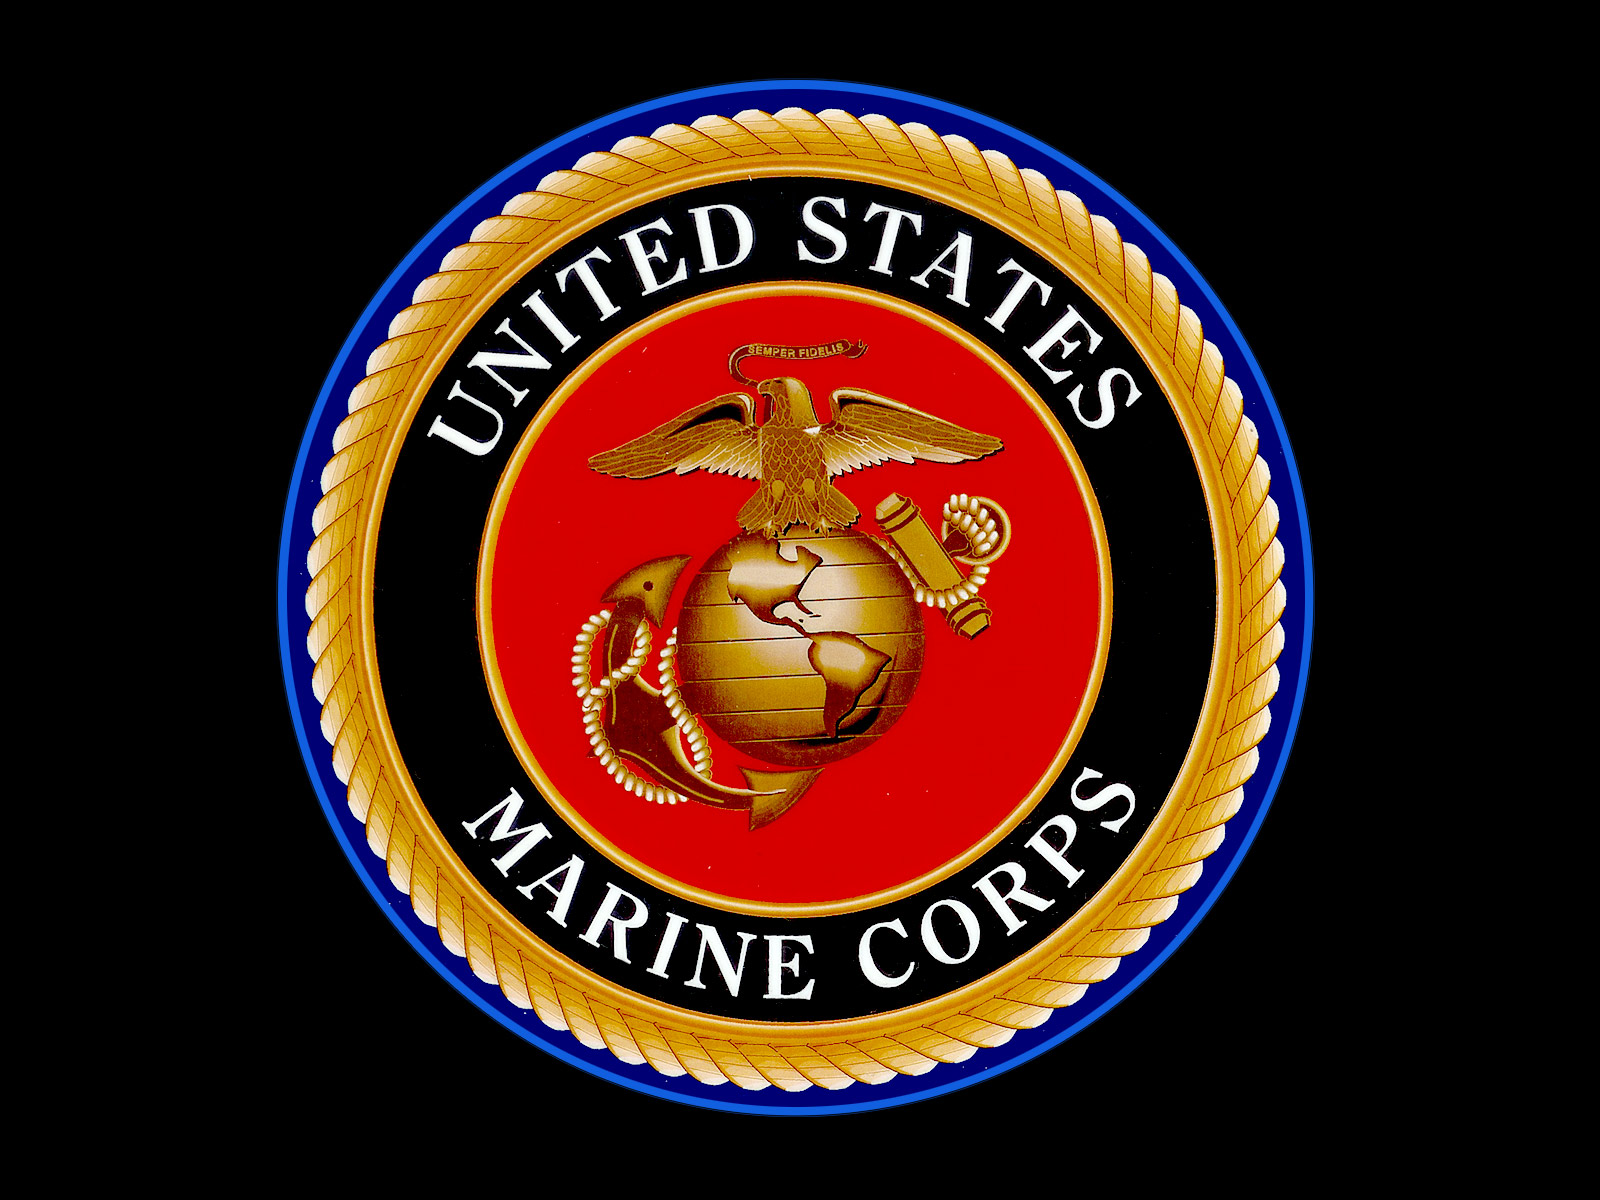 USMC Desktop Wallpaper wallpaper USMC Desktop Wallpaper hd wallpaper 1600x1200